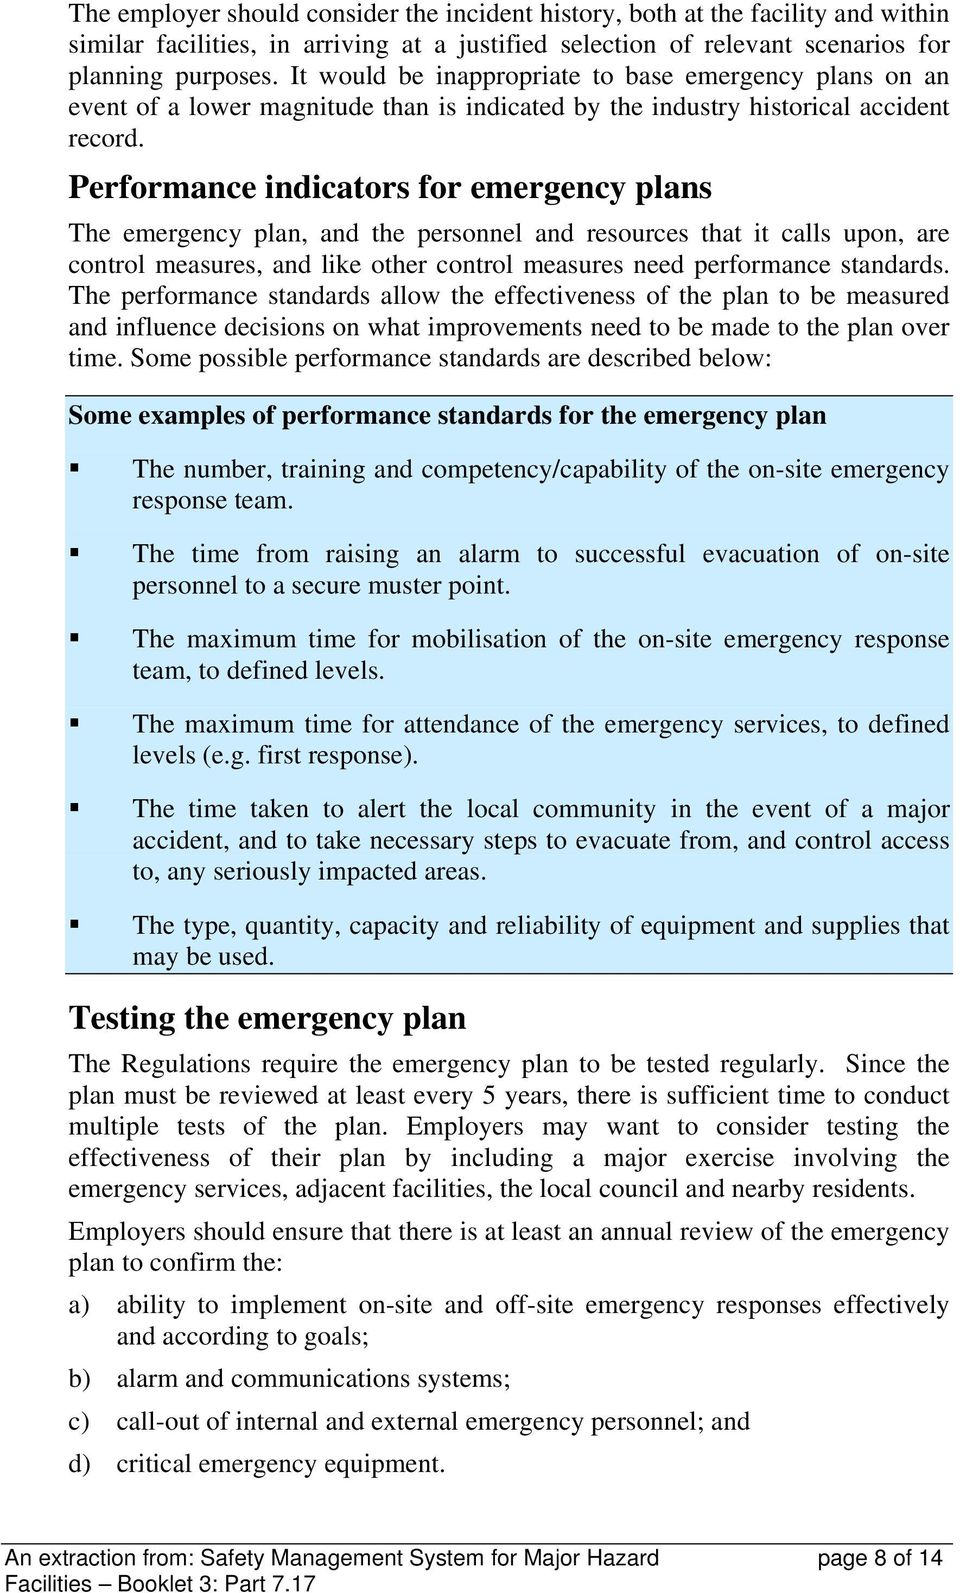 Performance indicators for emergency plans The emergency plan, and the personnel and resources that it calls upon, are control measures, and like other control measures need performance standards.